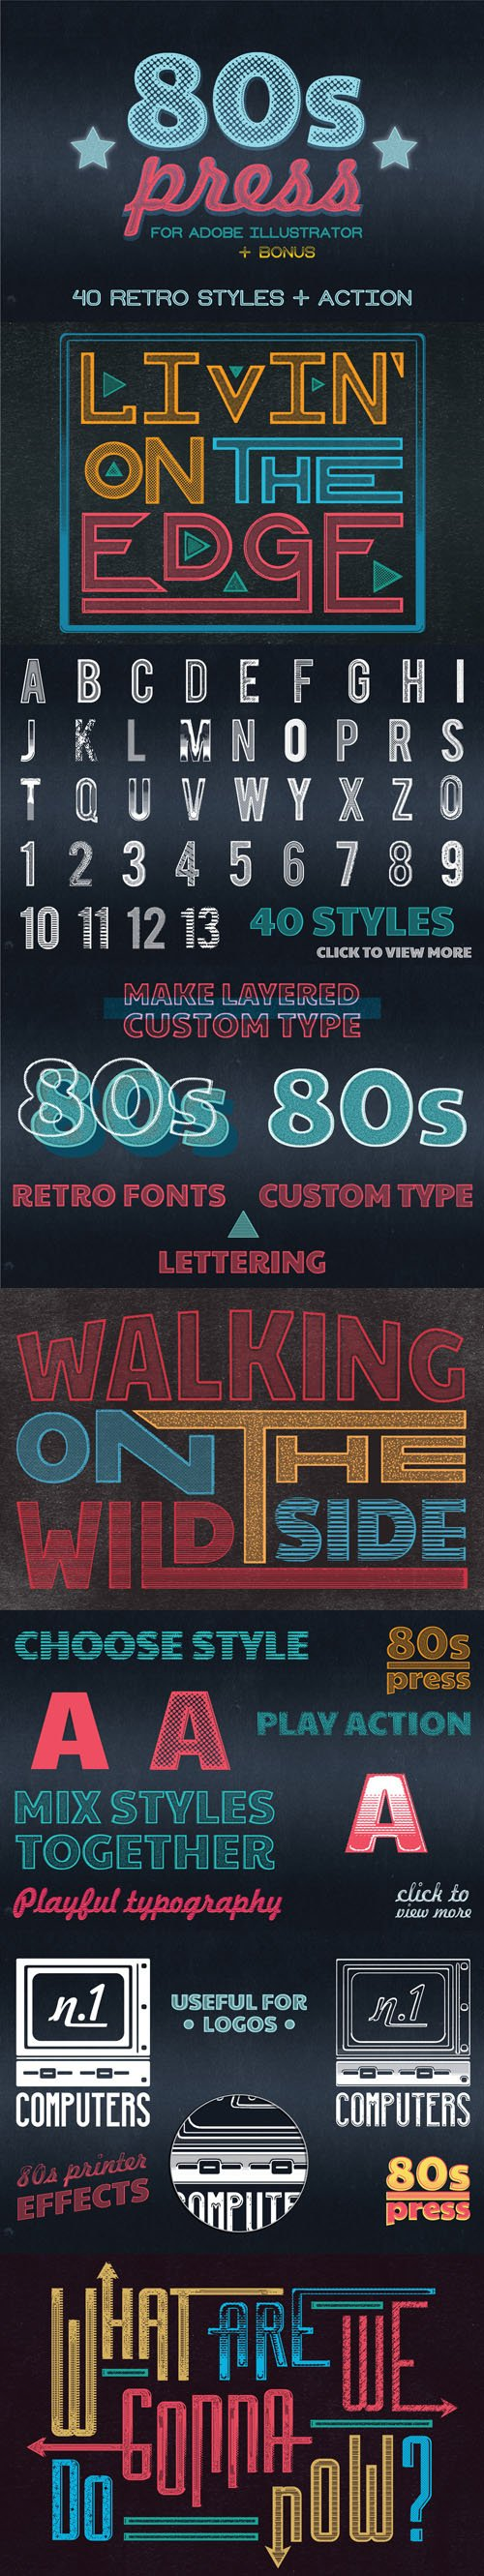 80's Press for illustrator - 40 Retro Styles & Actions